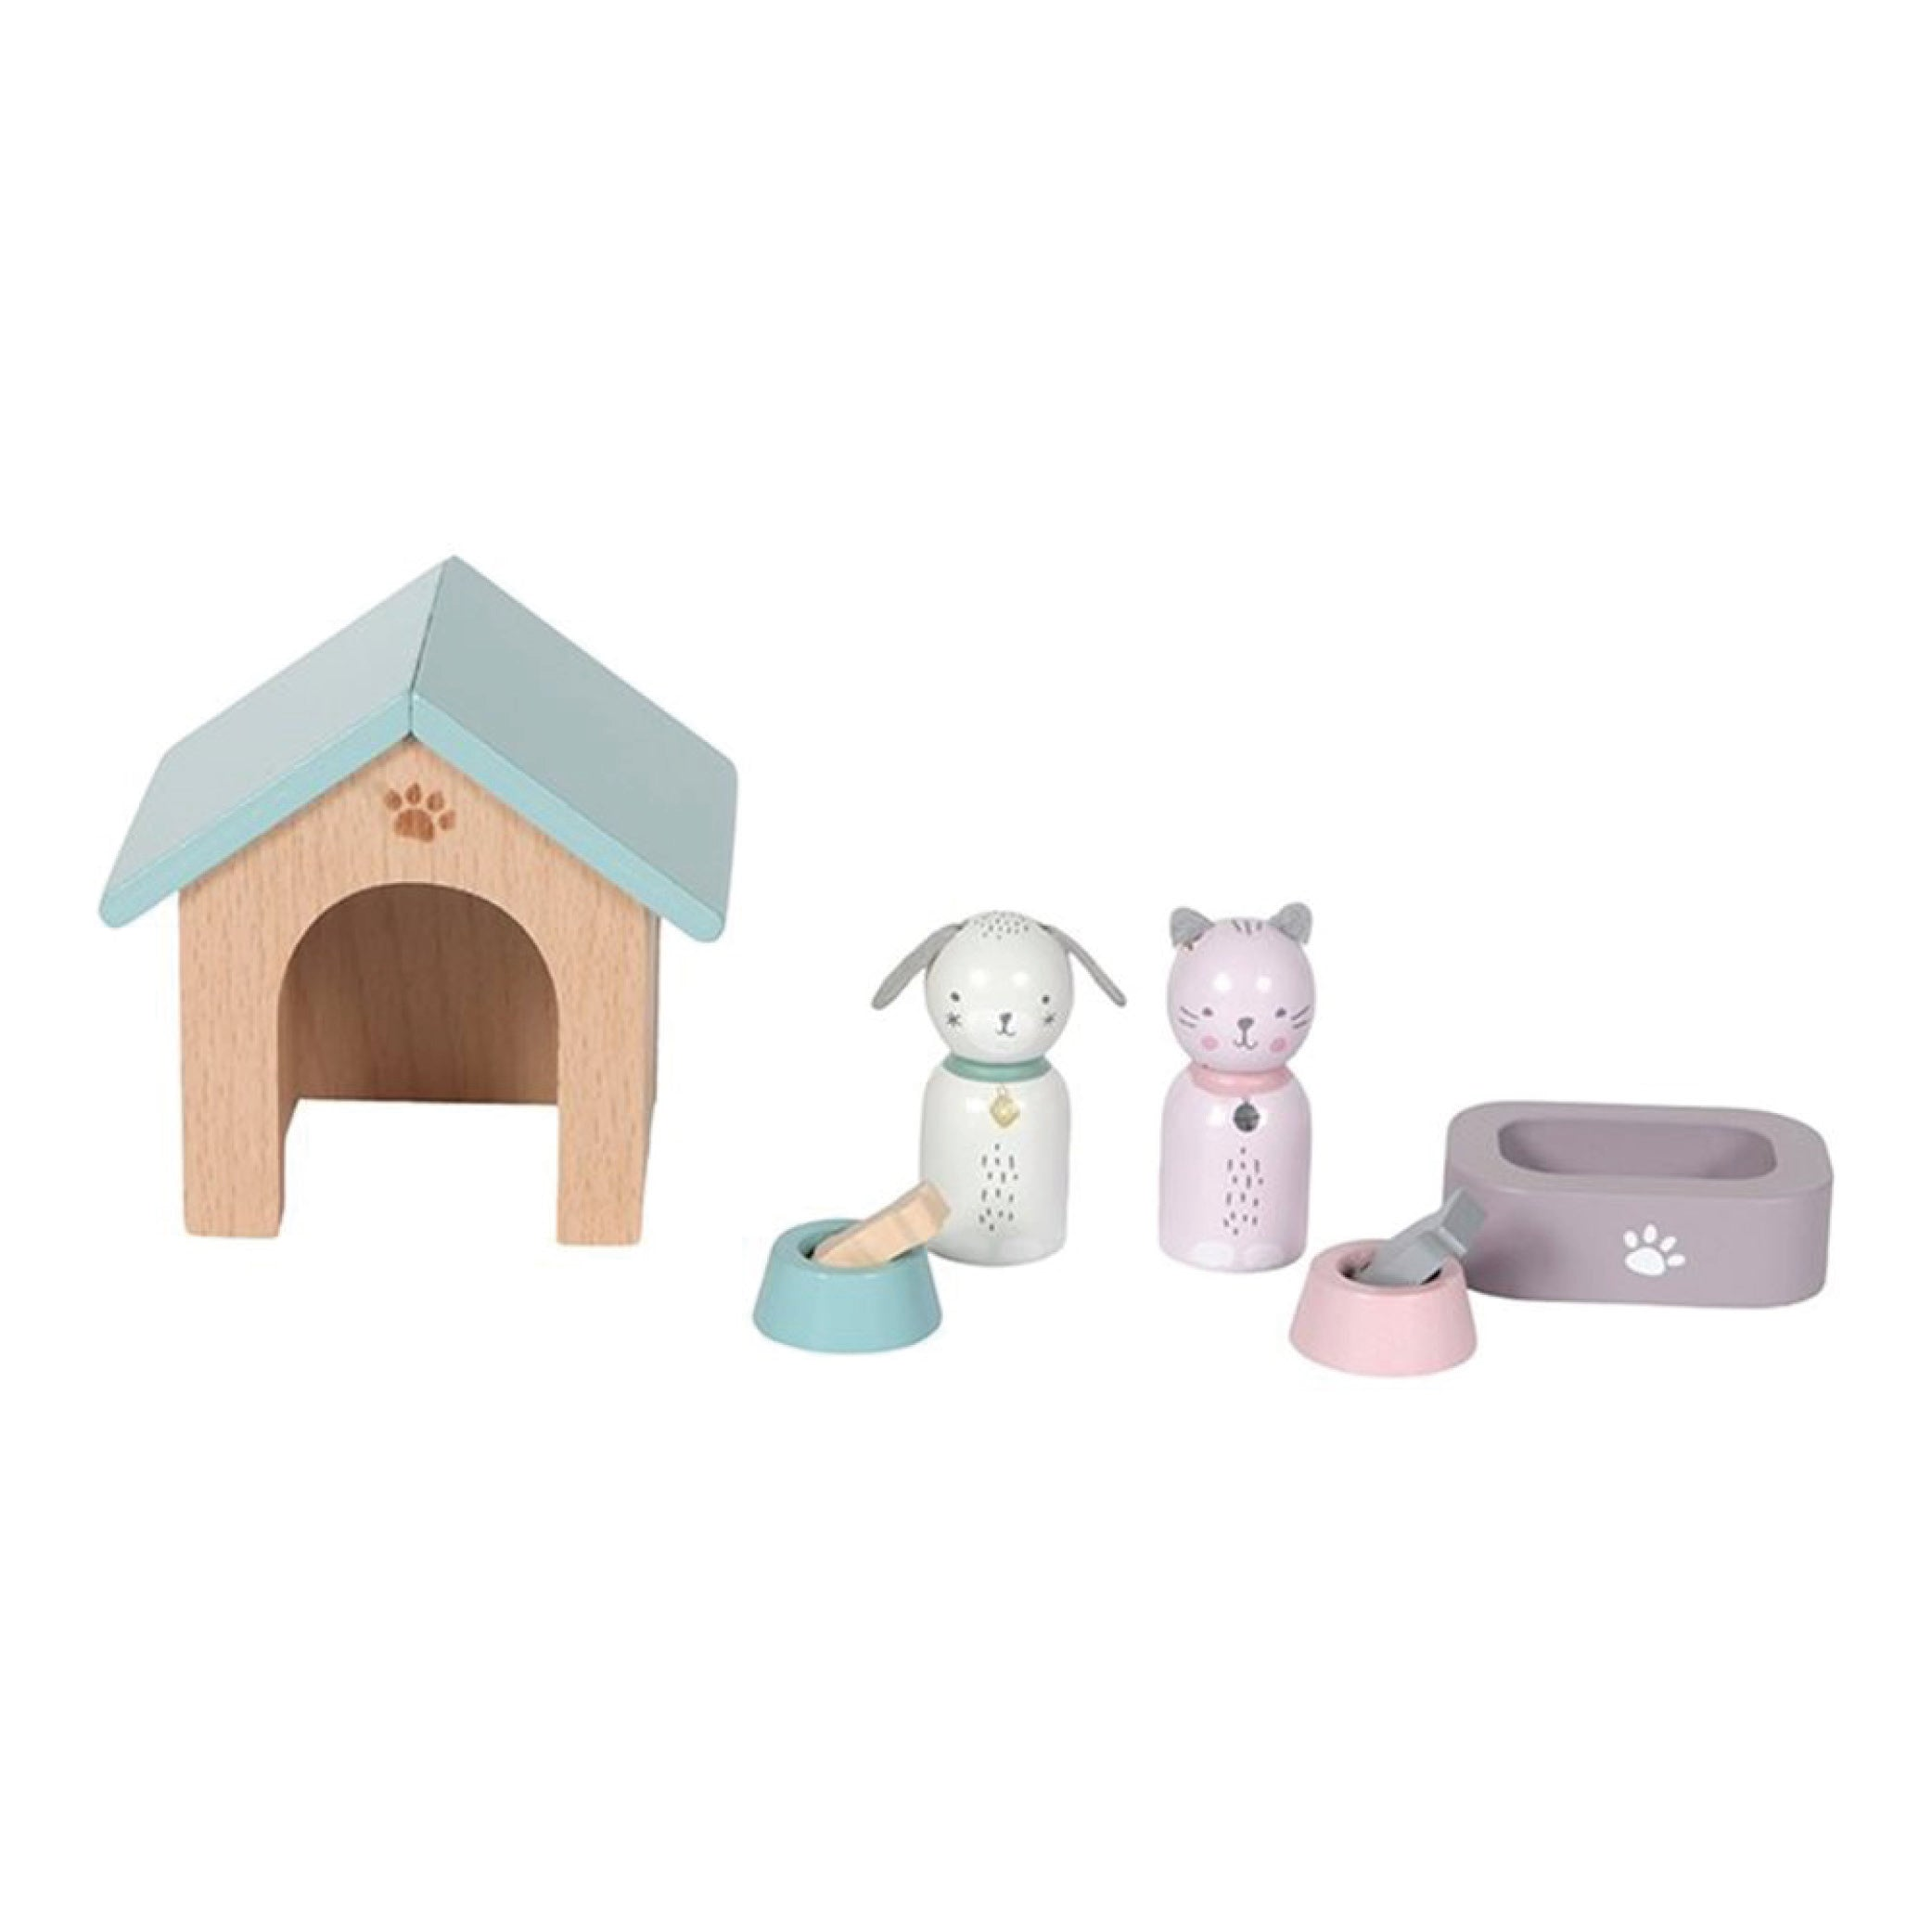 Doll's house Pets playset - LD